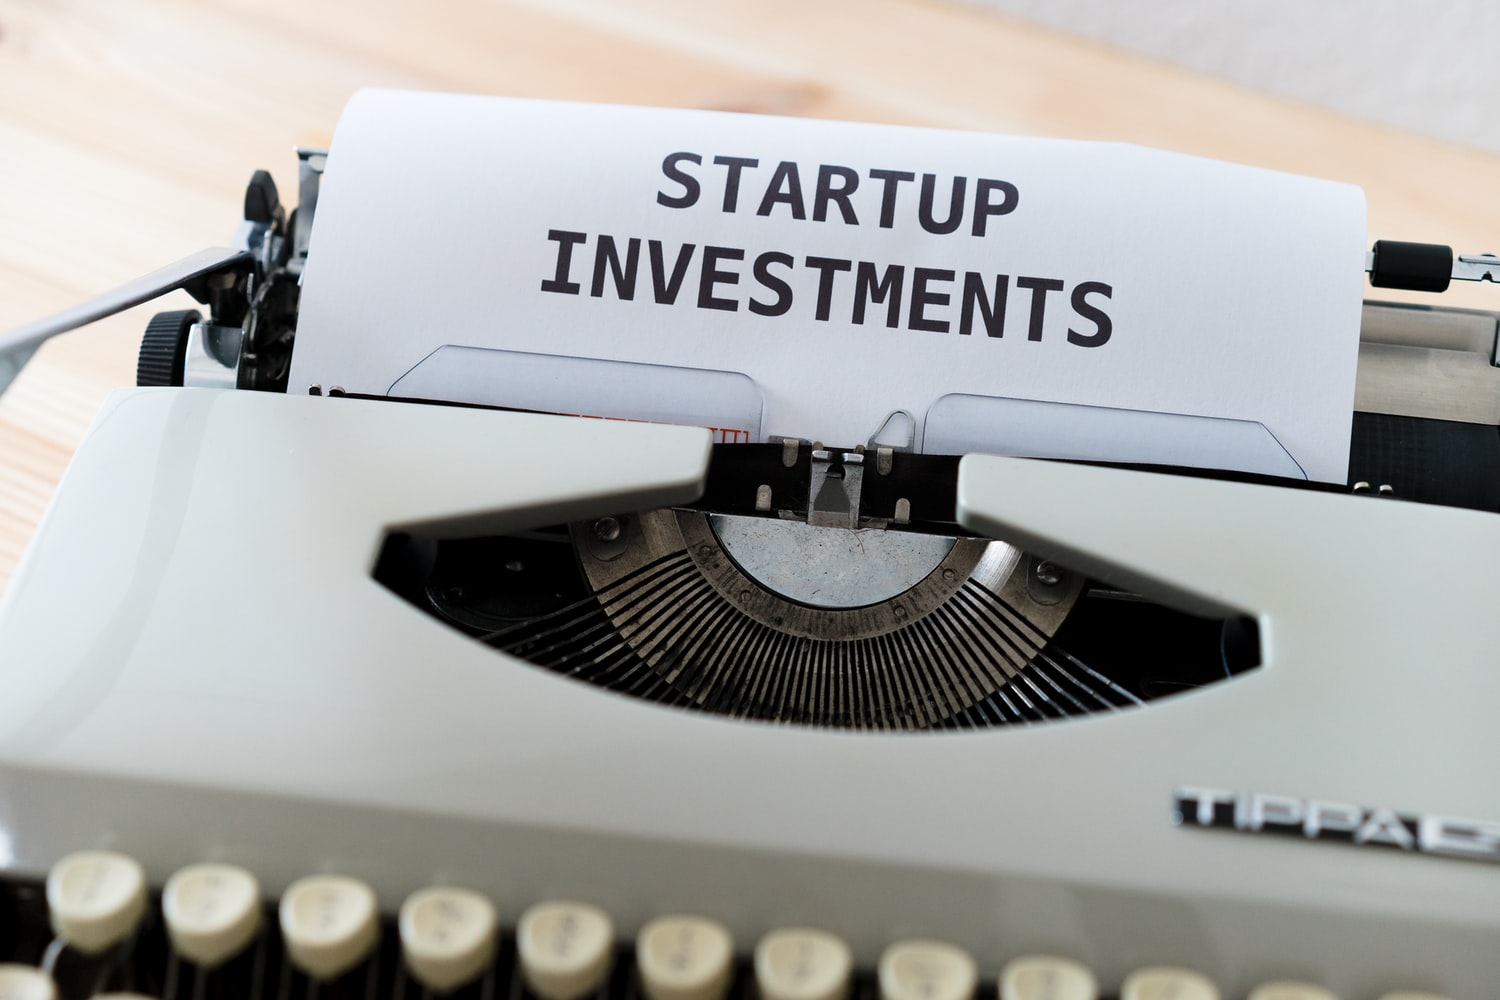 startup investments